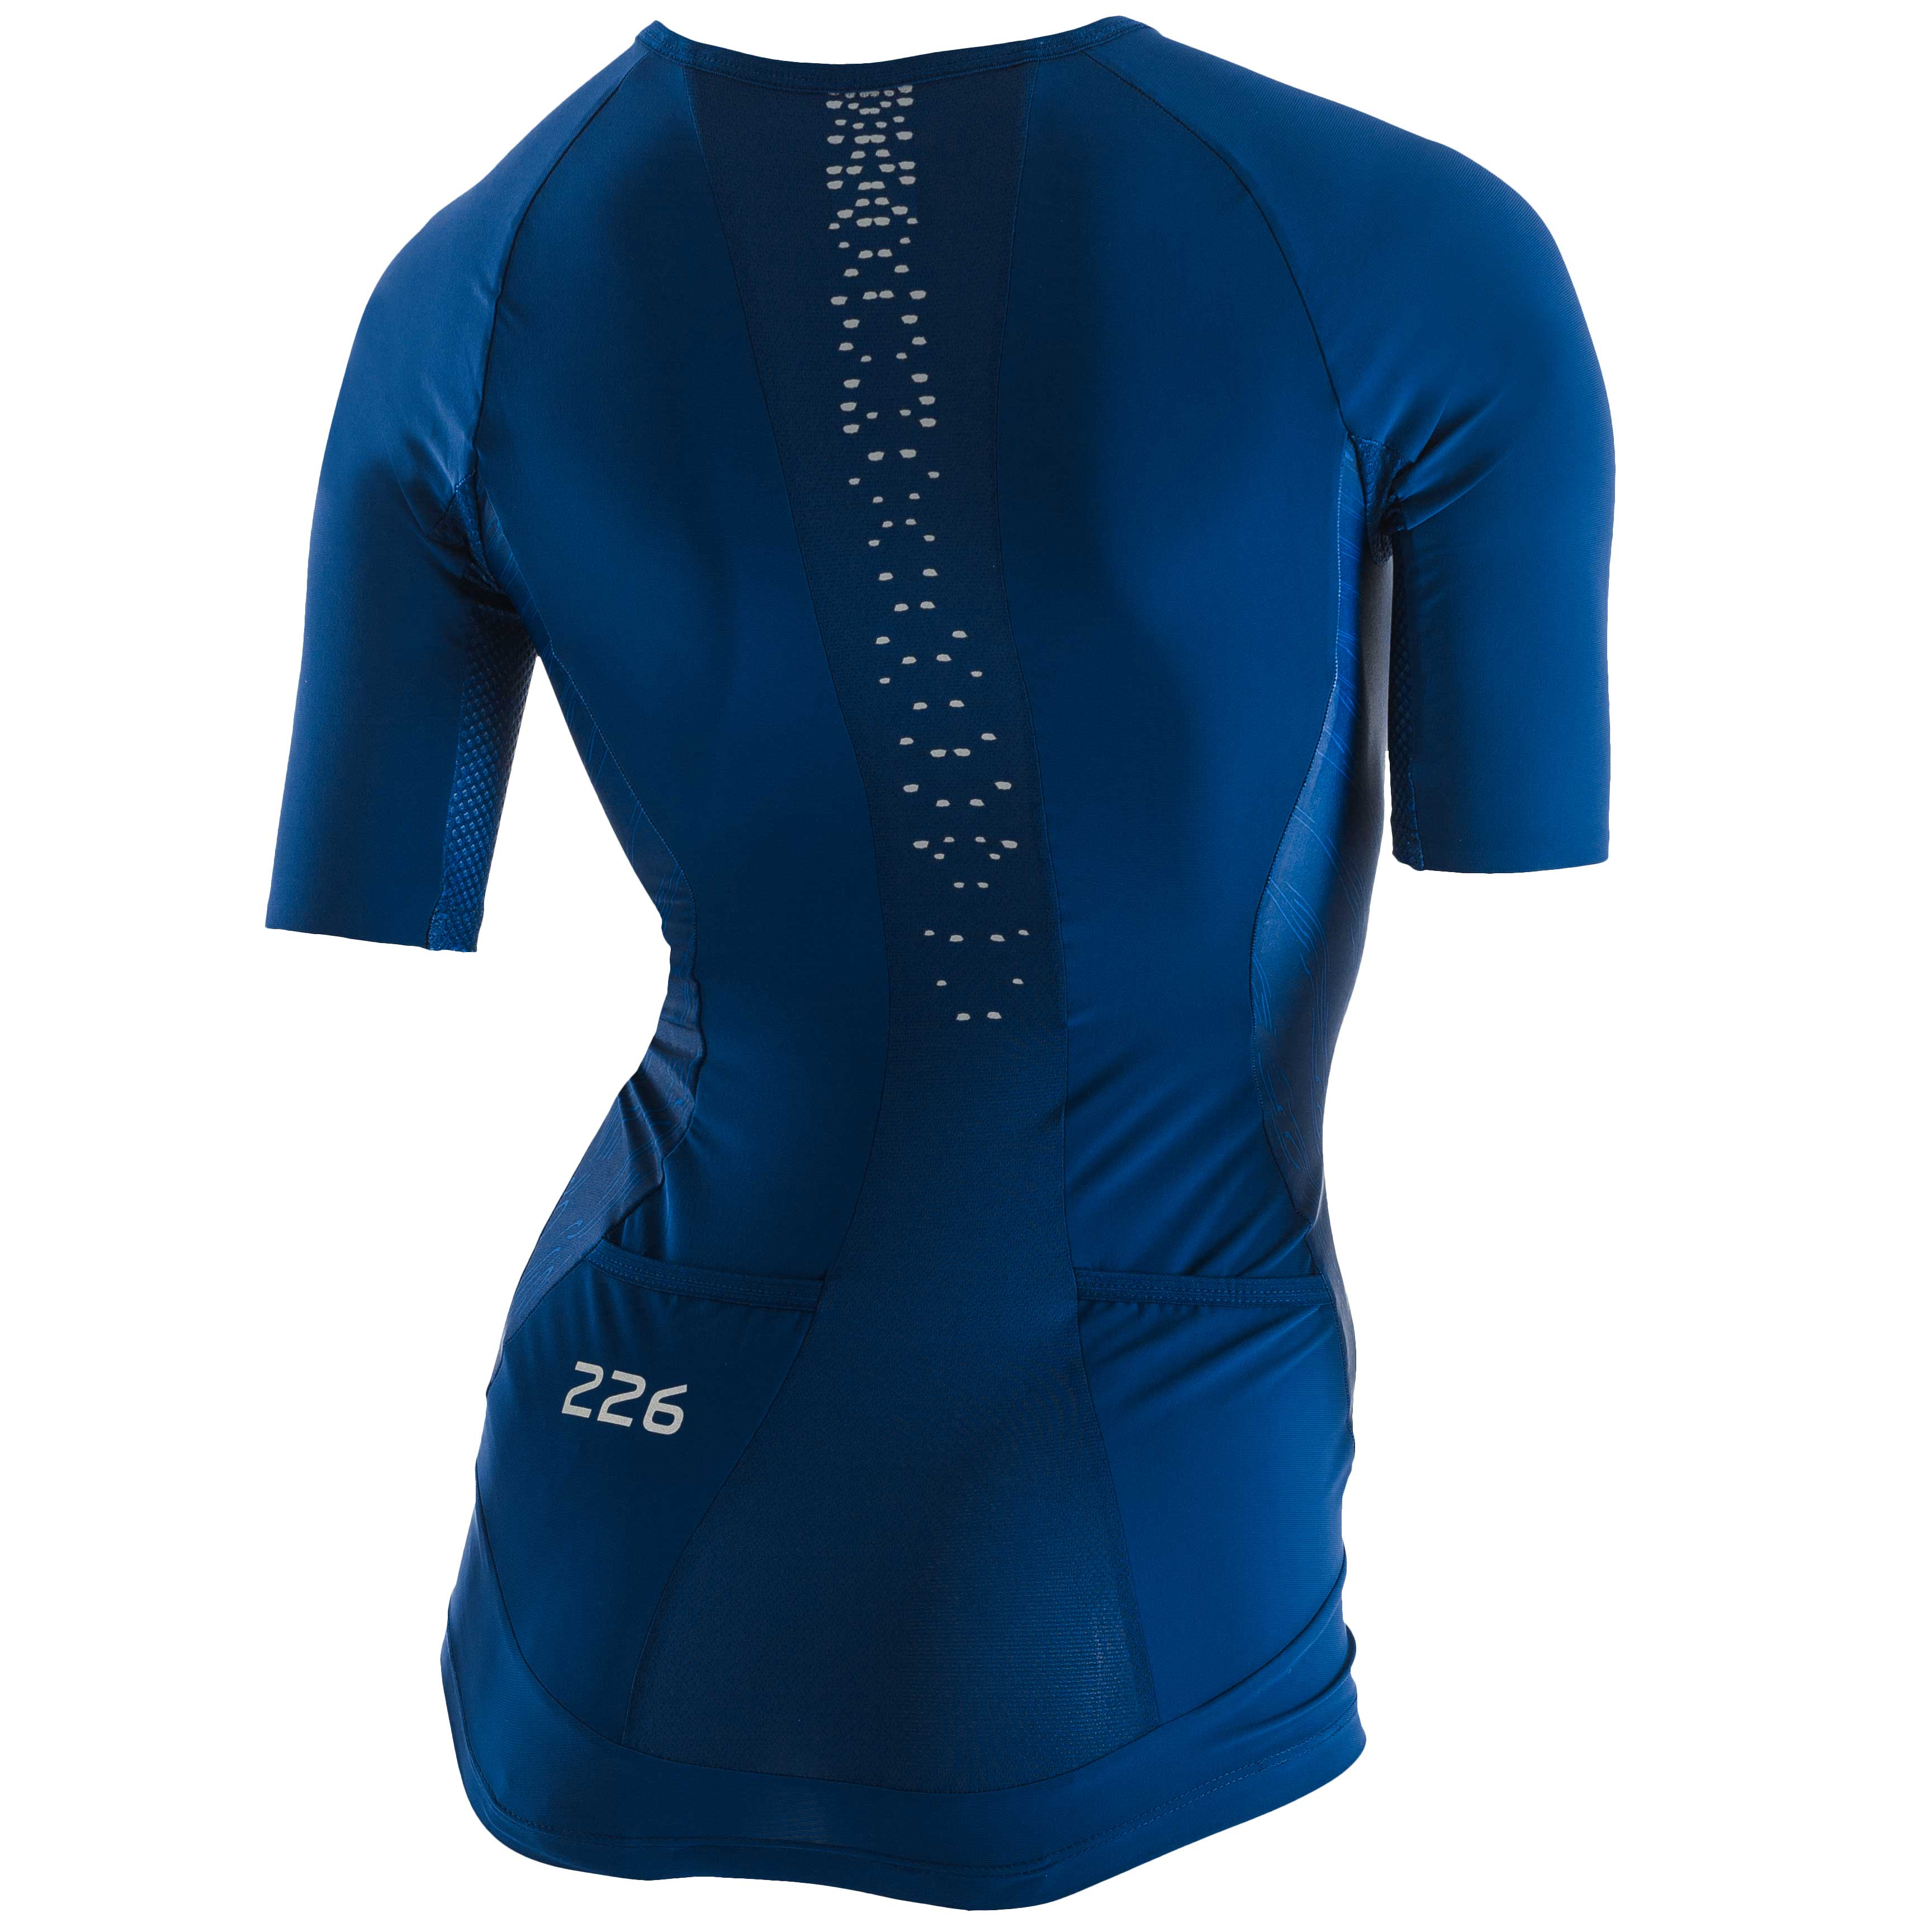 Orca Women's 226 Perform Tri Jersey